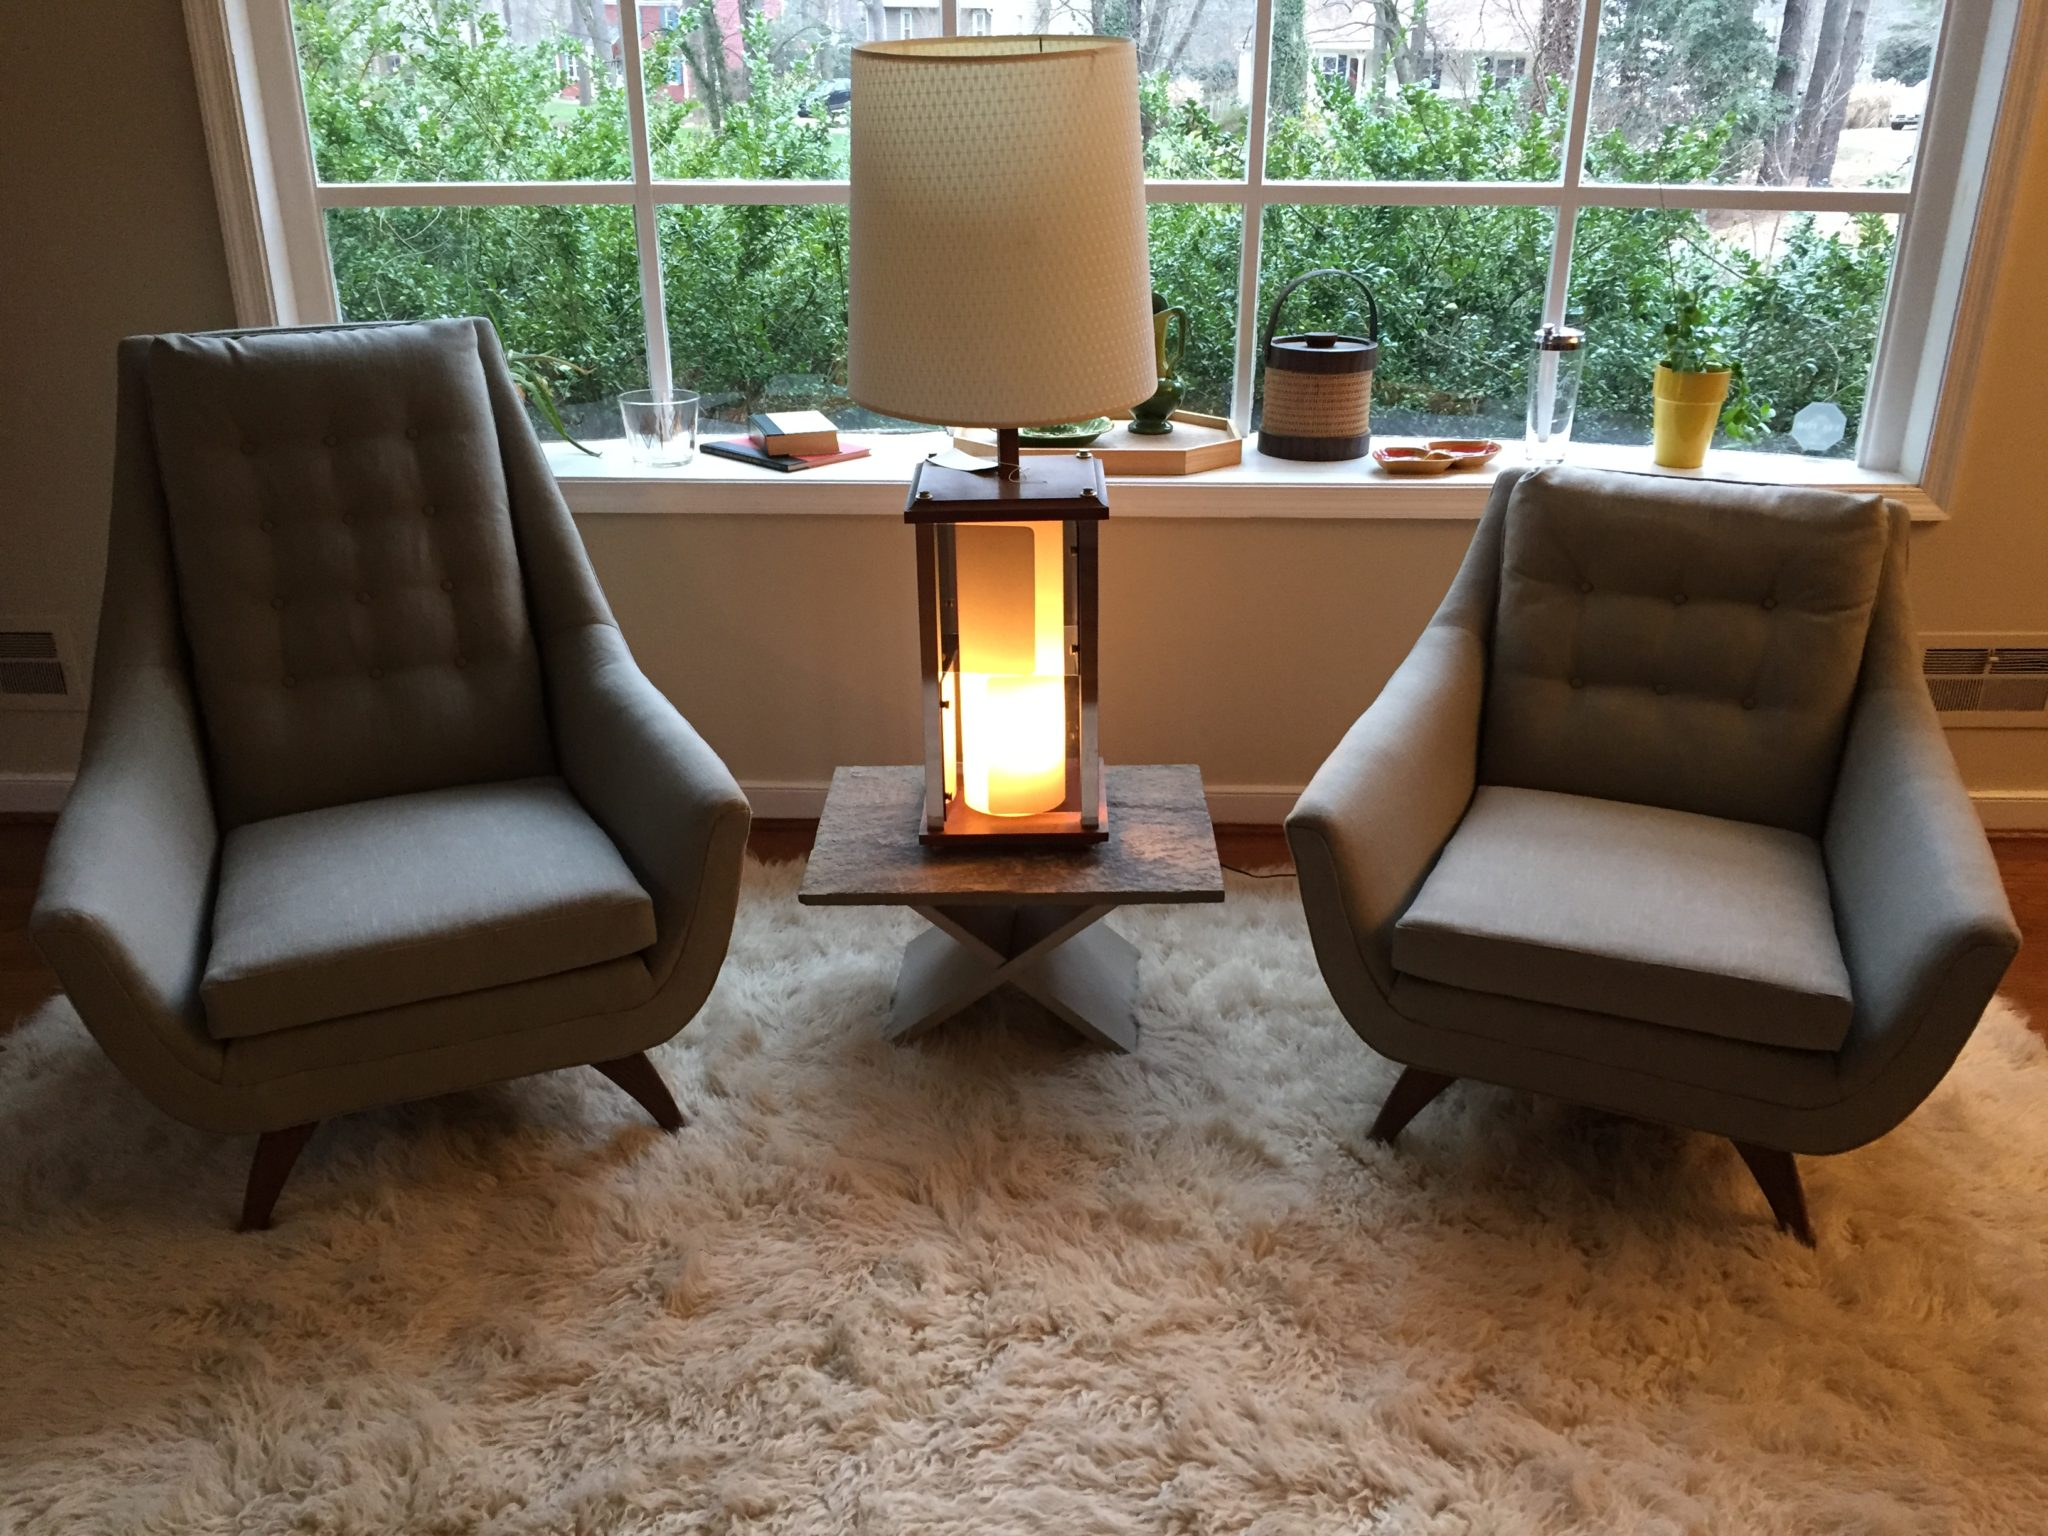 adrian pearsall lounge chair fishing with cup holder mid century modern pair of chairs epoch matching new gray linen upholstery